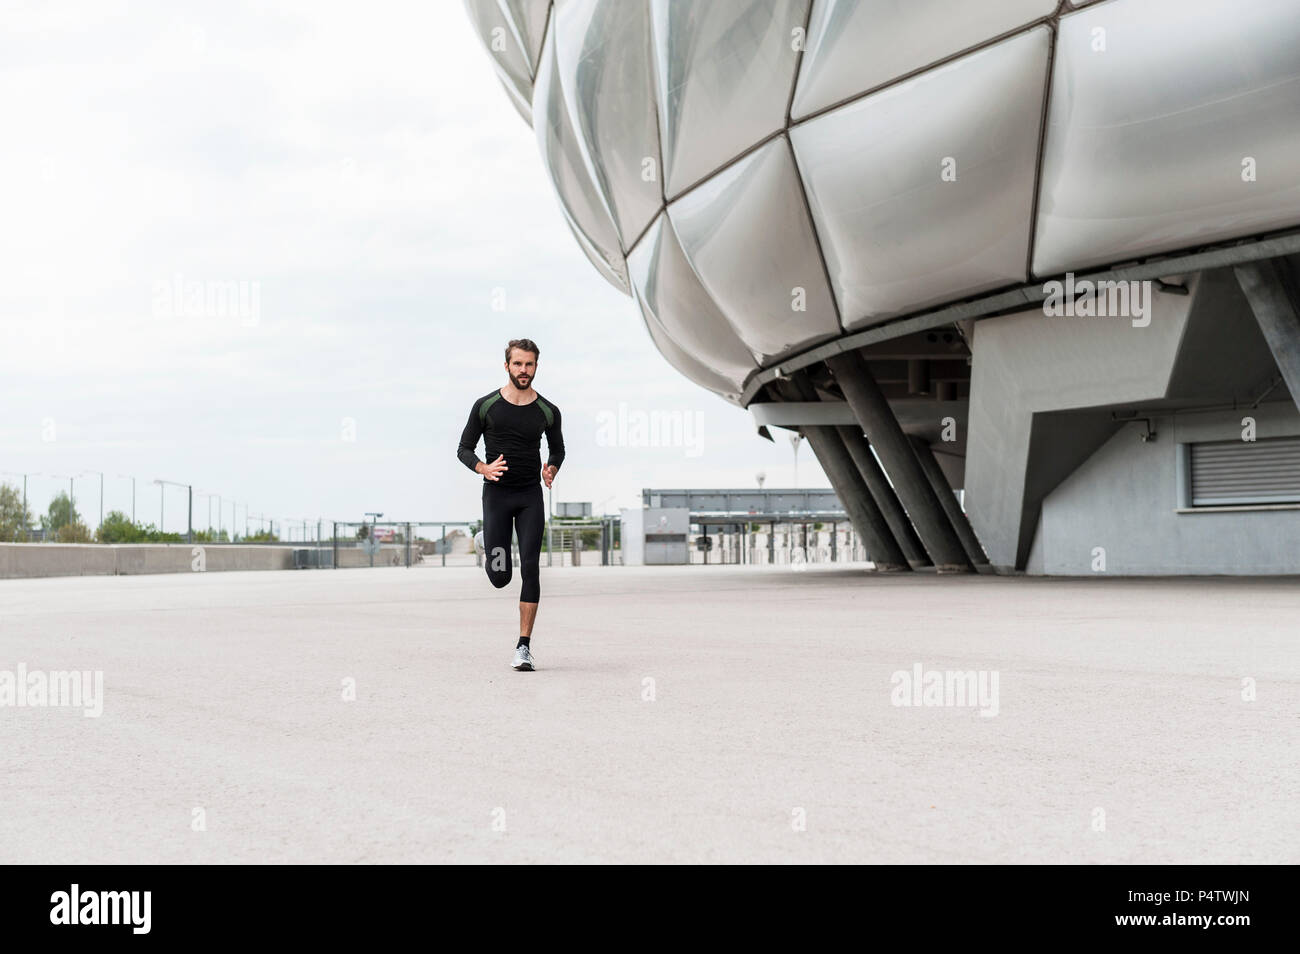 Man running at stadium - Stock Image